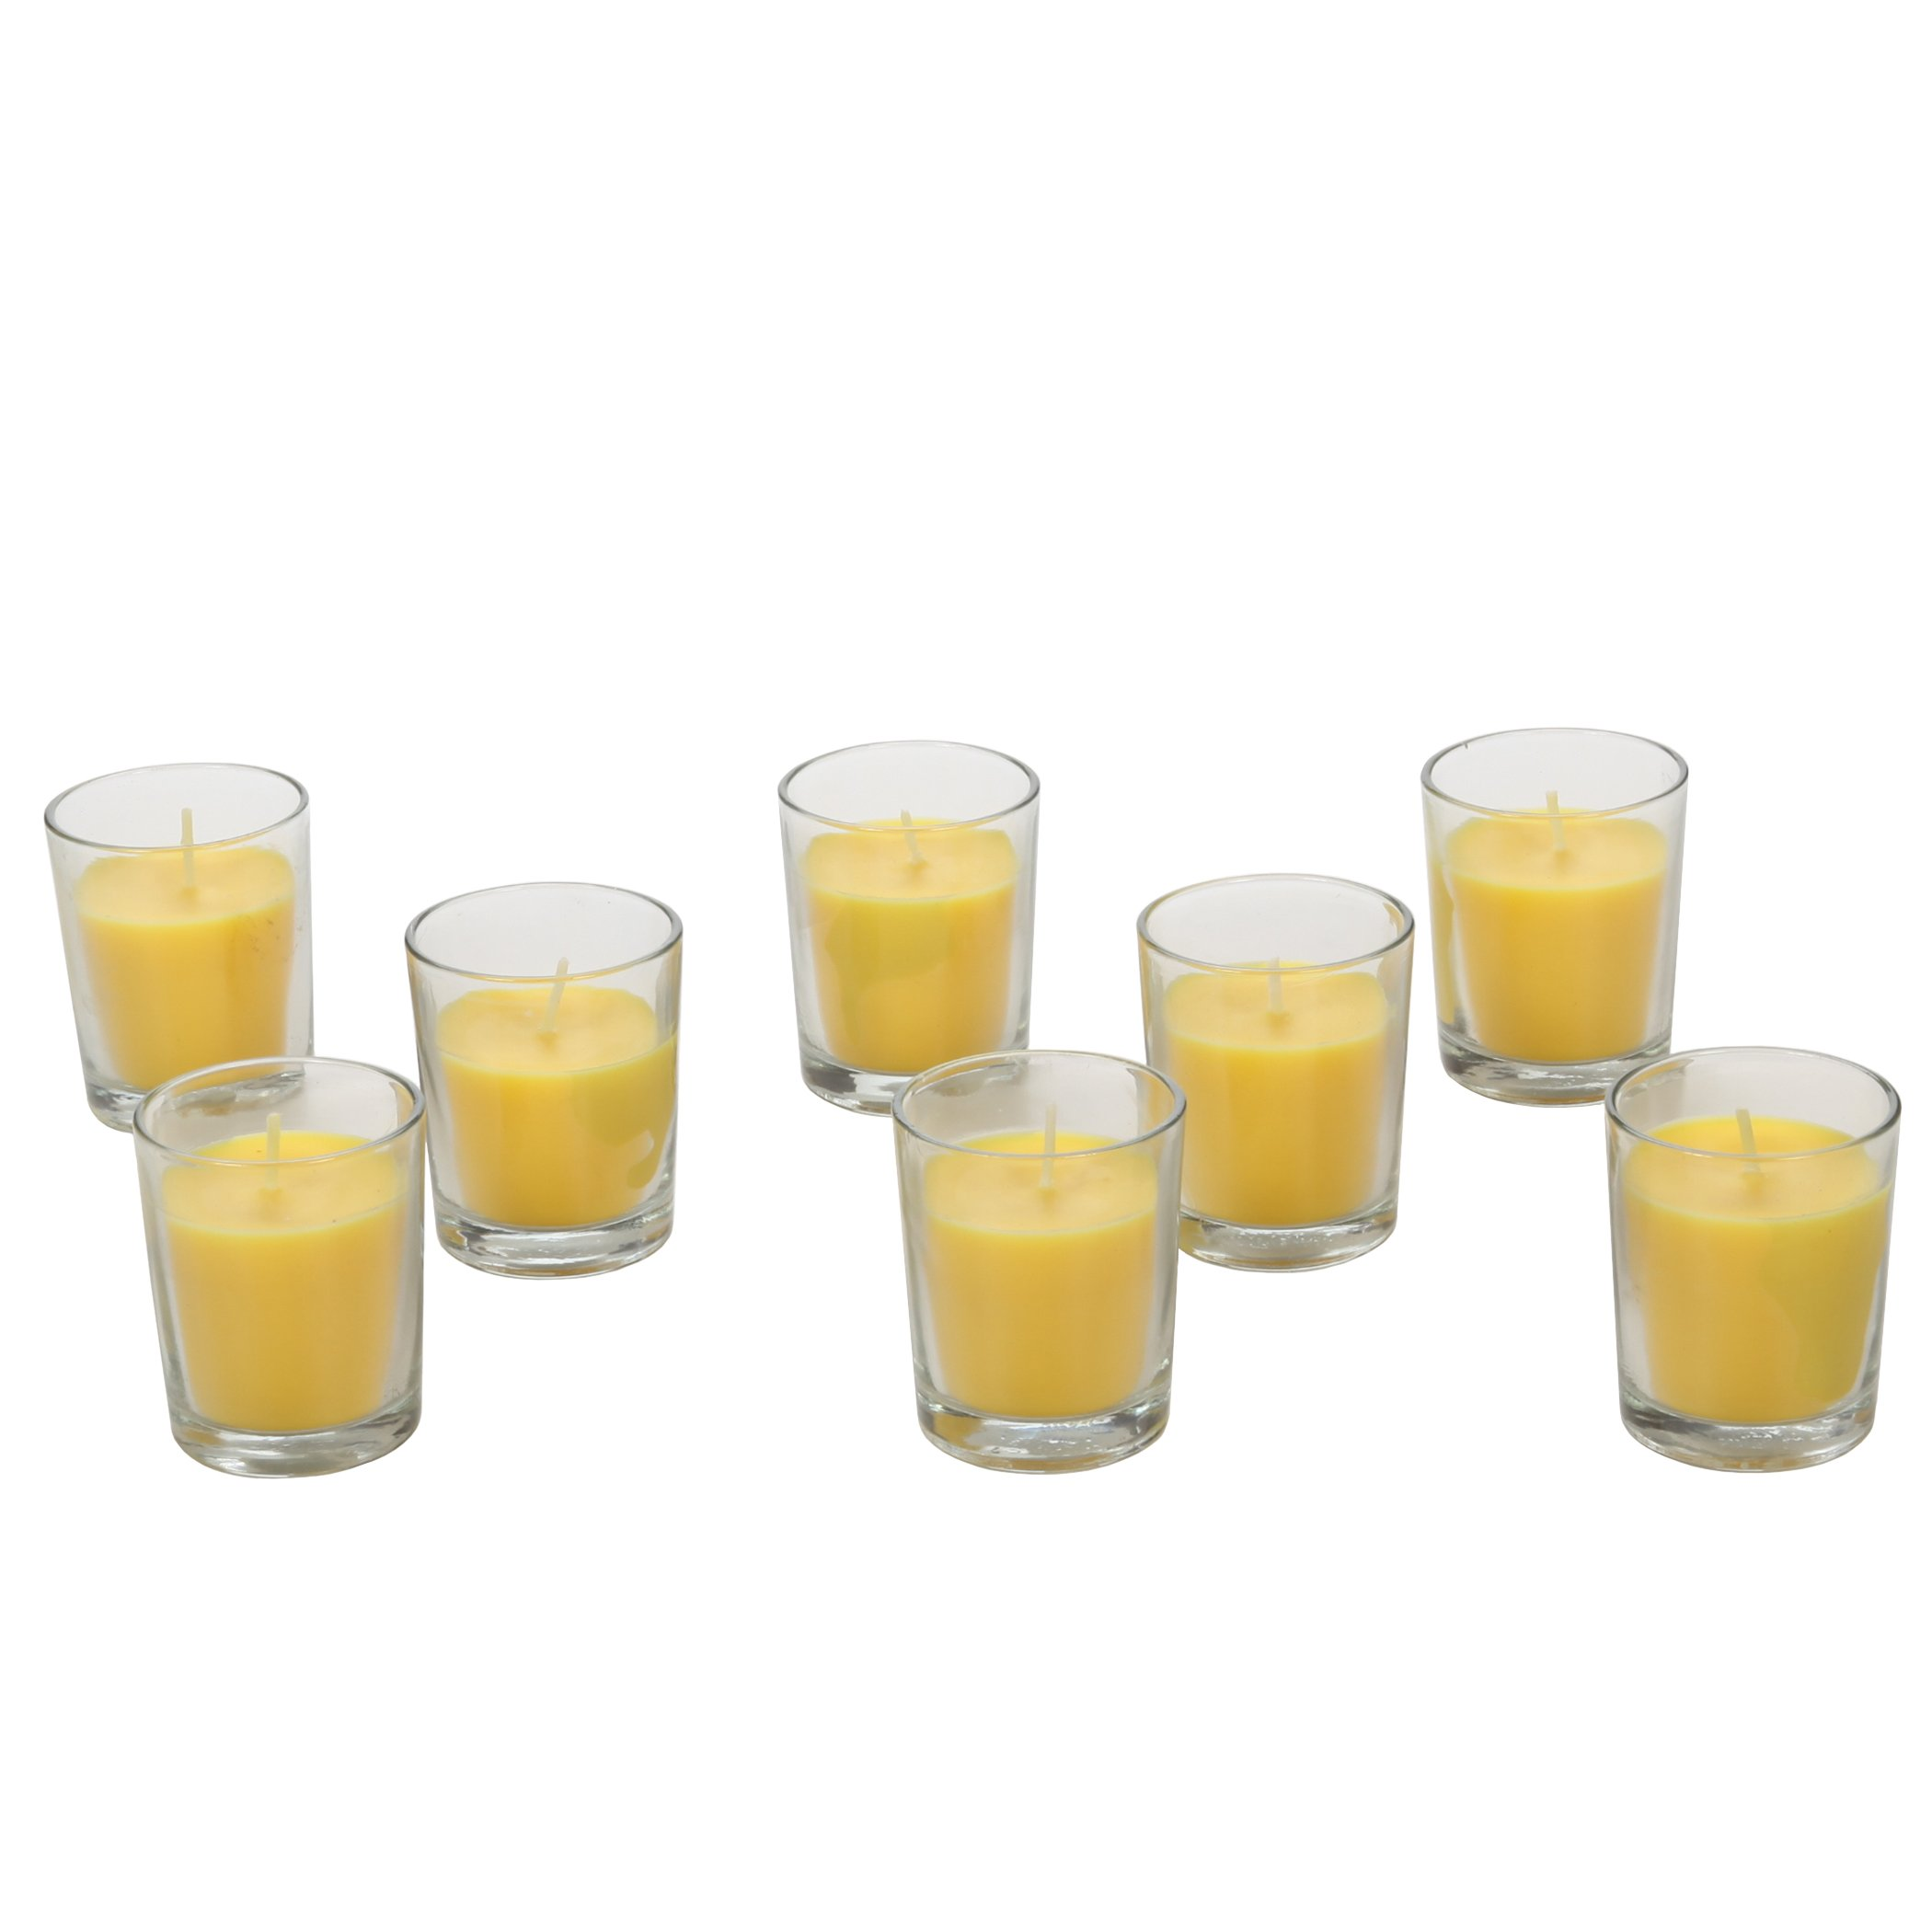 Hosley Highly Scented Set of 8, Citronella, Rosemary, Sage, Lemon Grass blend, Essential Oils, Votive Candles in Clear Glass. Burns upto 12 hours each. Great Gift for Home, Patio, Gardens